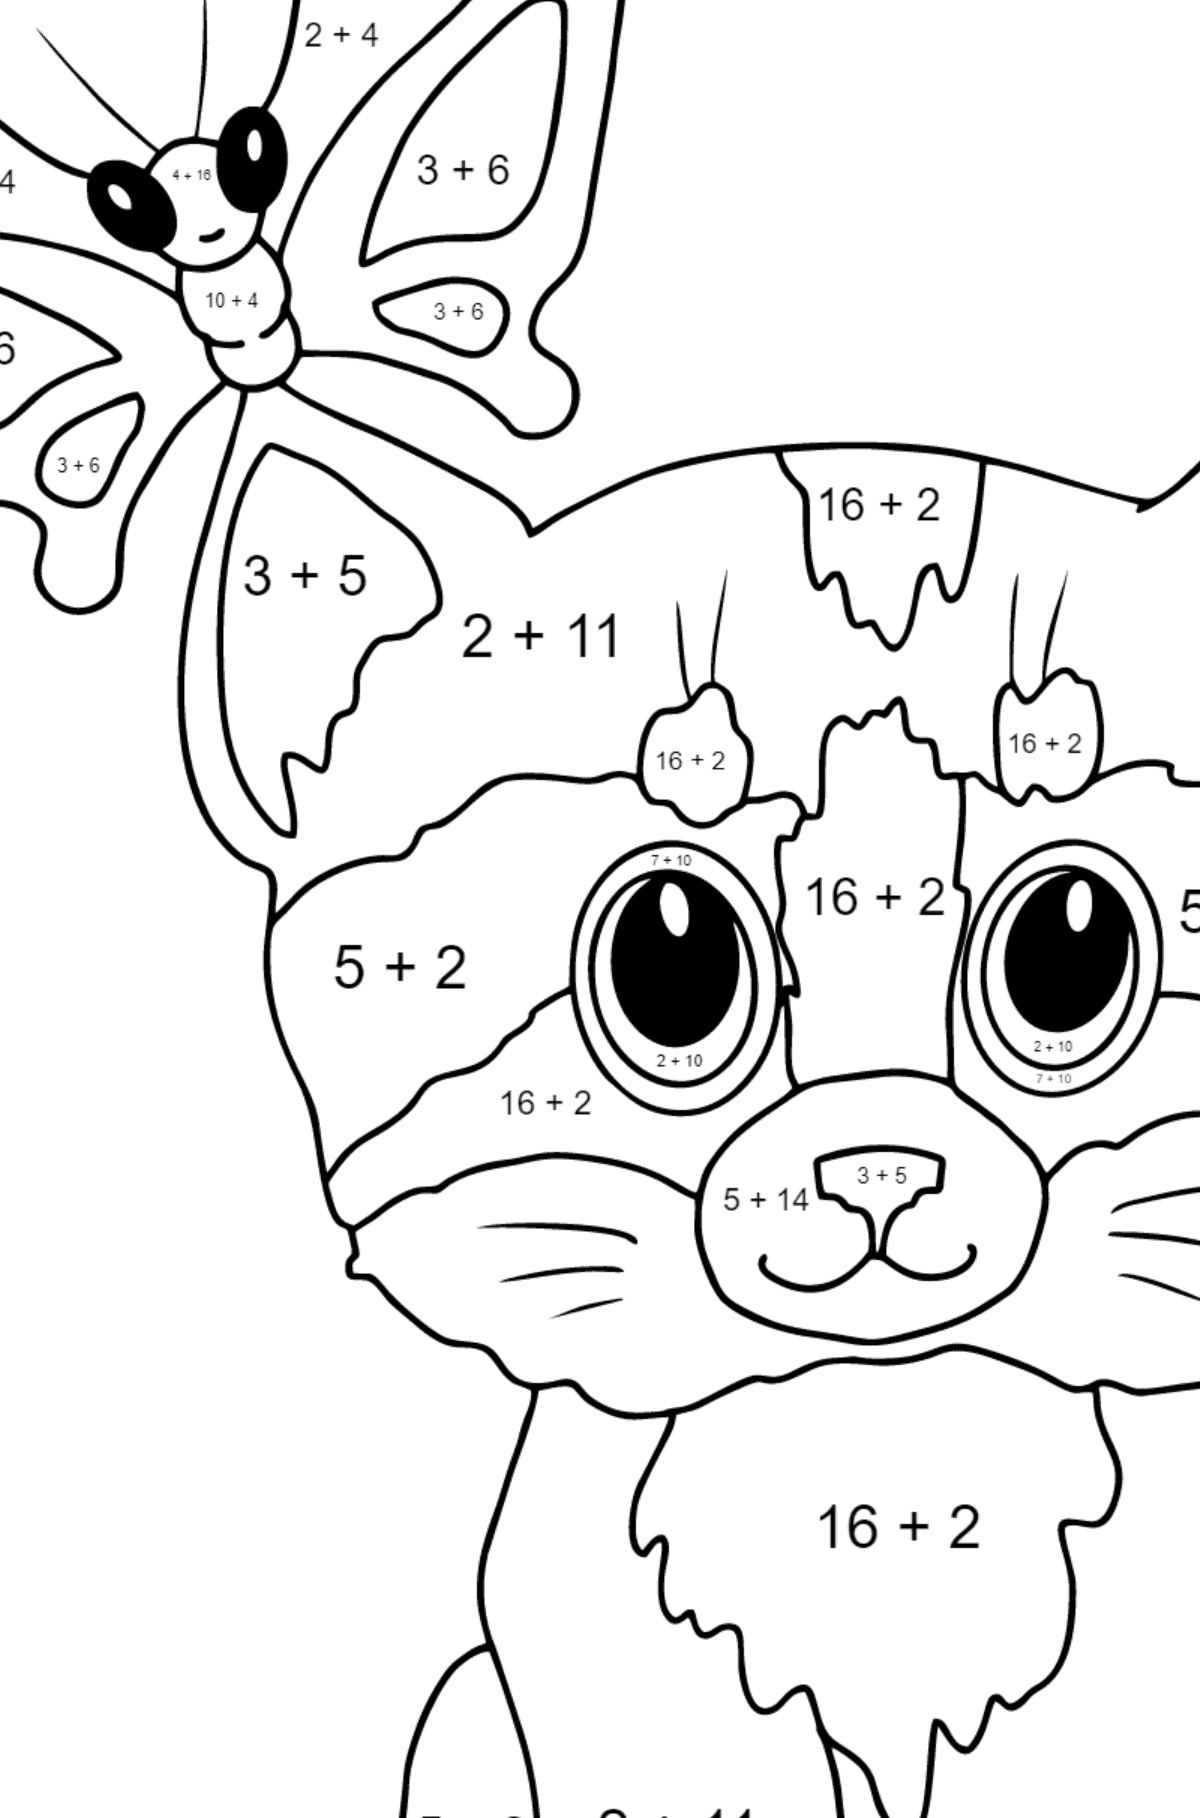 Coloring Page - A Cat with a Butterfly on Its Ear - Math Coloring - Addition for Kids